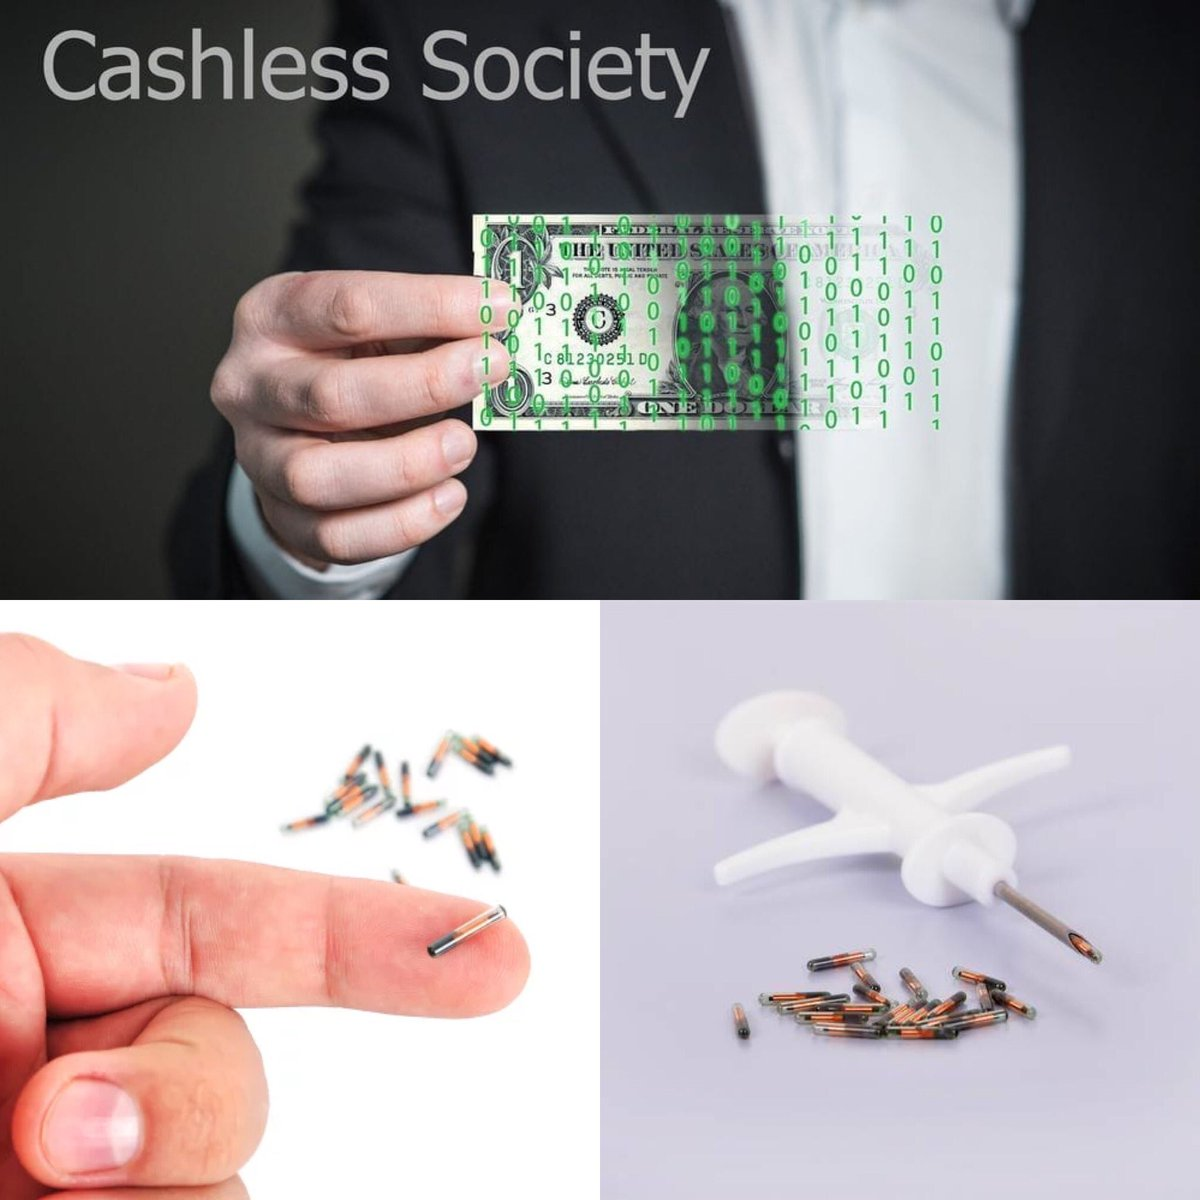 This is the 👉🏾9/11👈🏾 money 💵 don't matter if your #rich or #poor 🌊 #WallStreet 🌊 means #cashless society 💵 a lot of people right now already took the mark of death 💀 they've become one ☝🏾with the 🔥 #beastsystem 🔥 @BarackObama